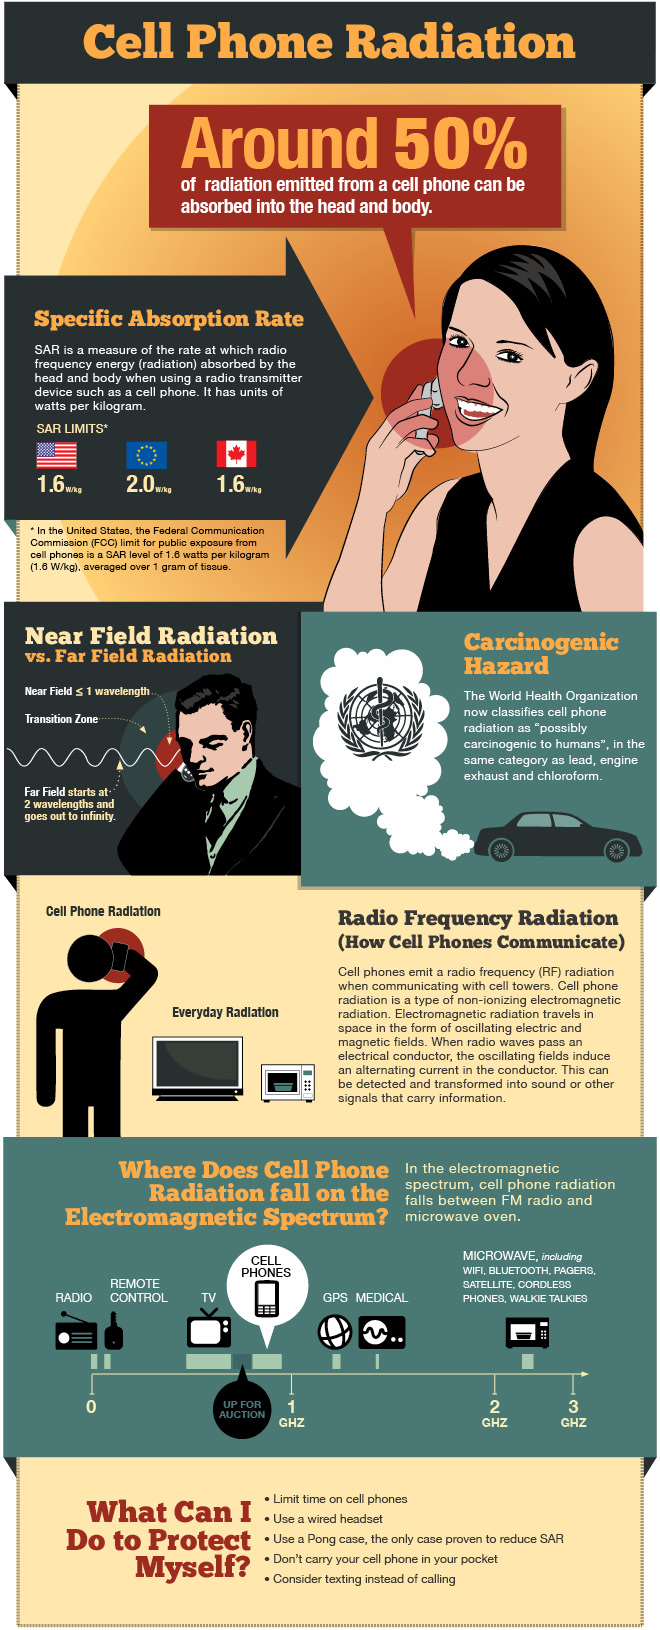 Cell Phone Radiation Facts